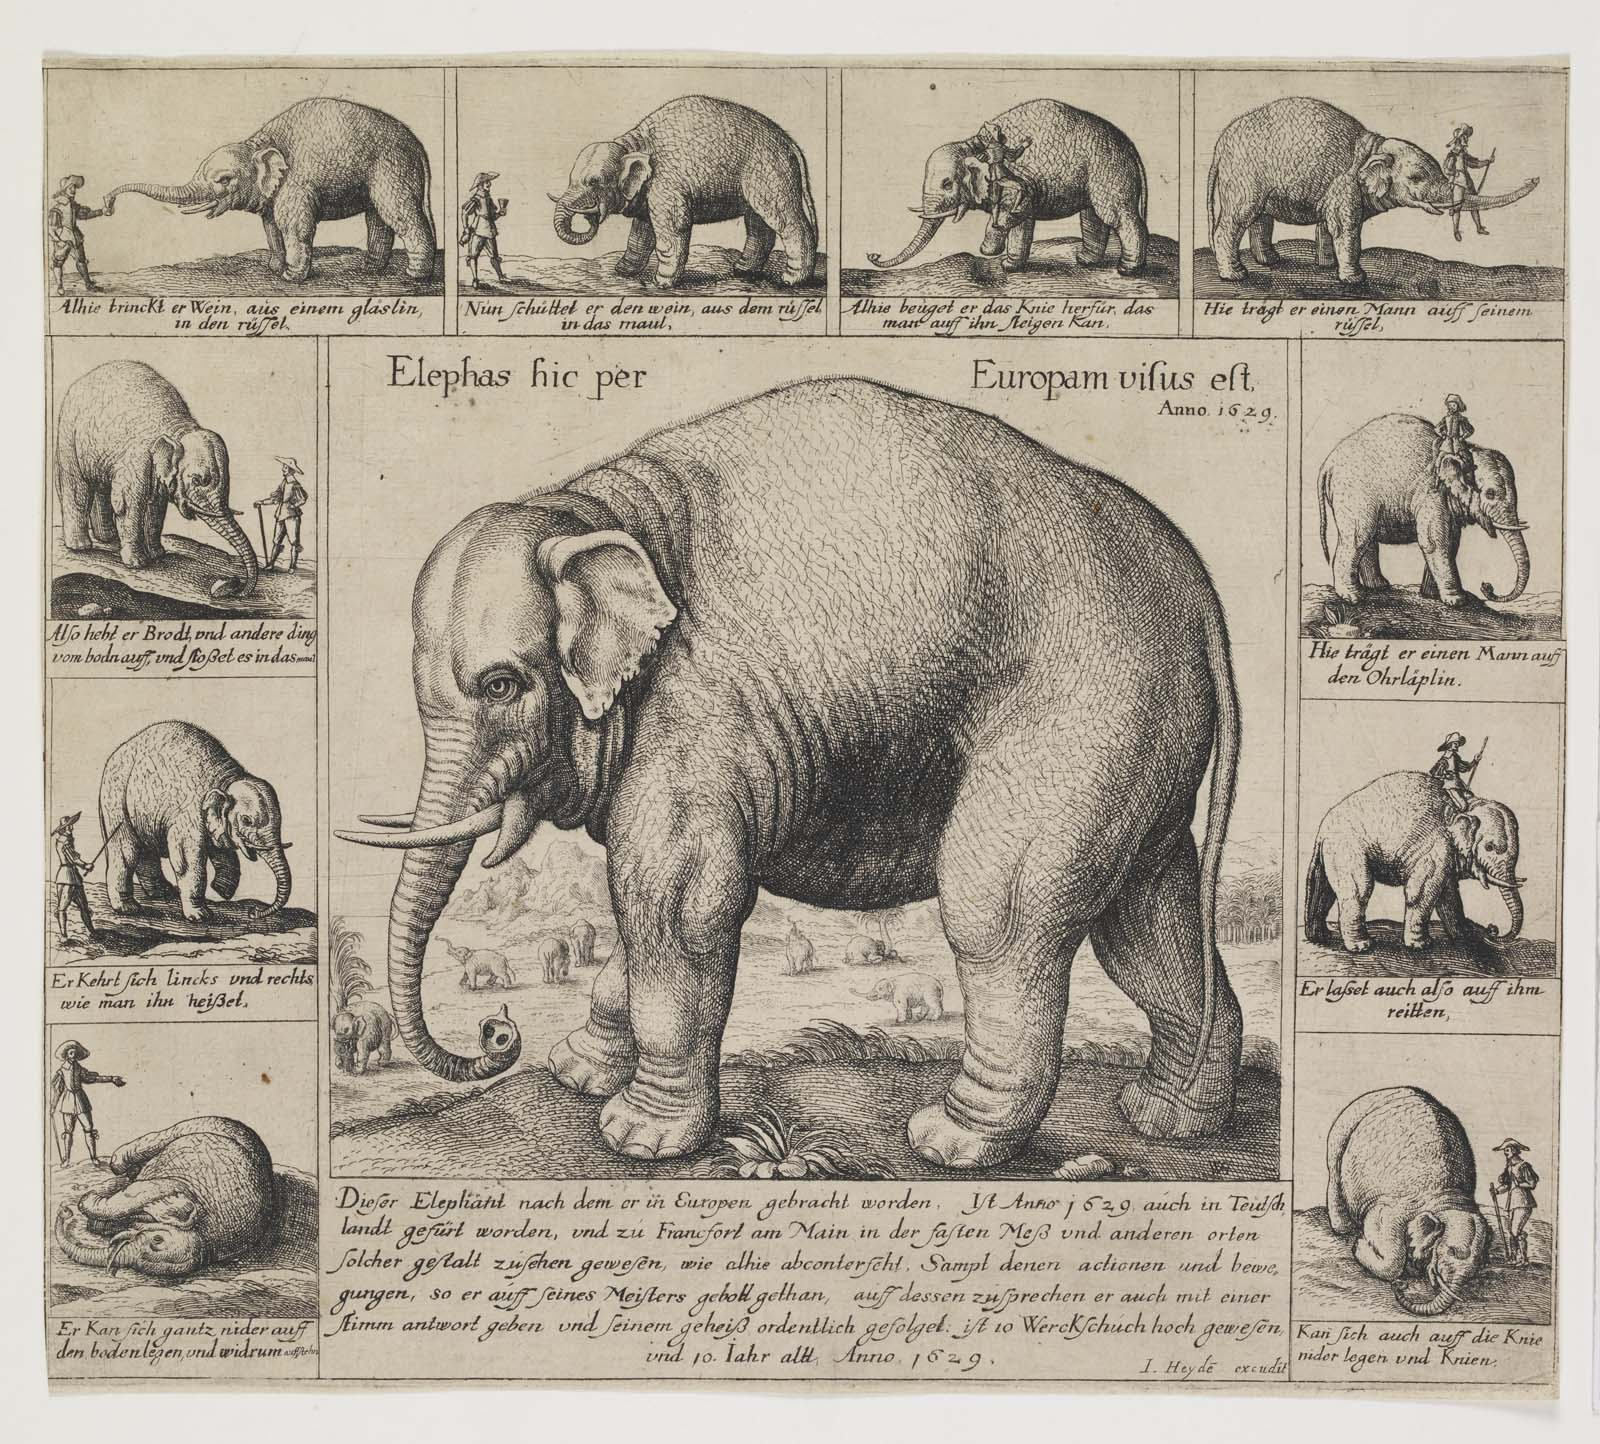 an old print showing various views of an elephant